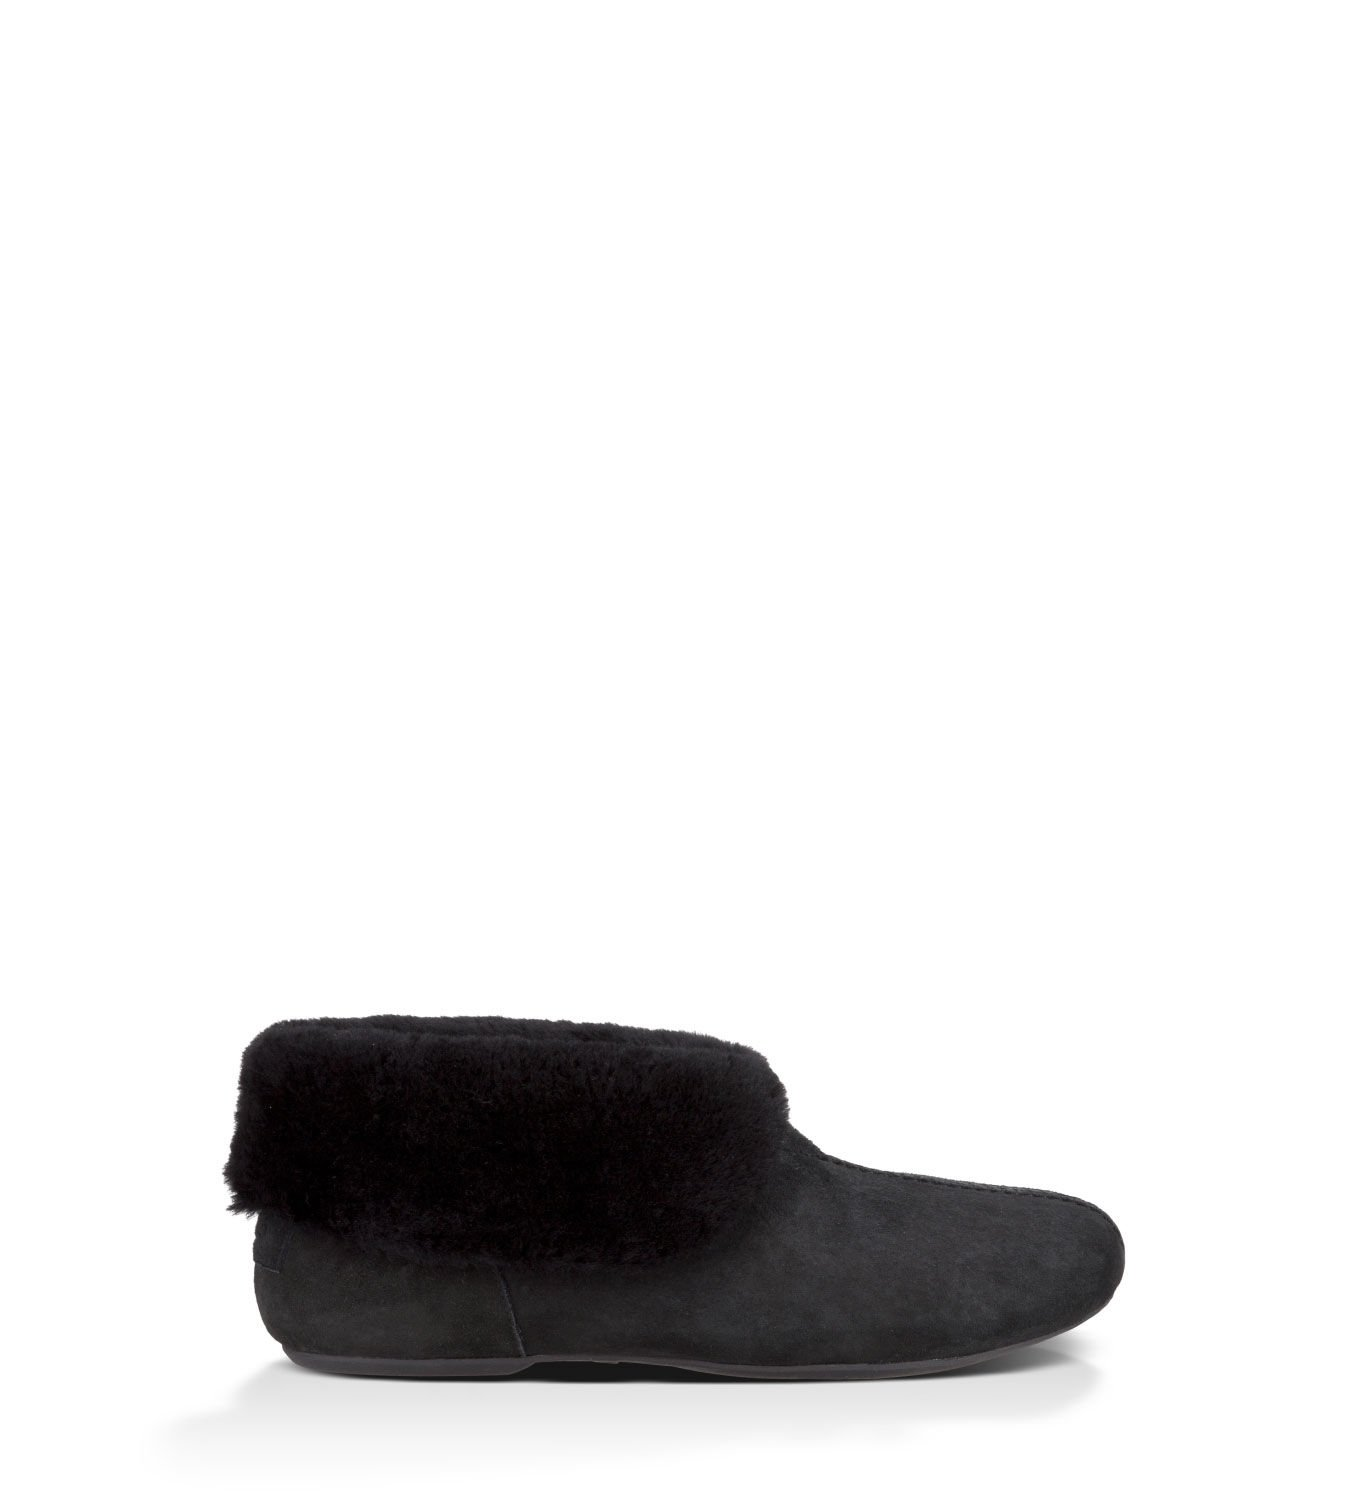 UGG Australia Womens Nerine Slipper Black Size 6